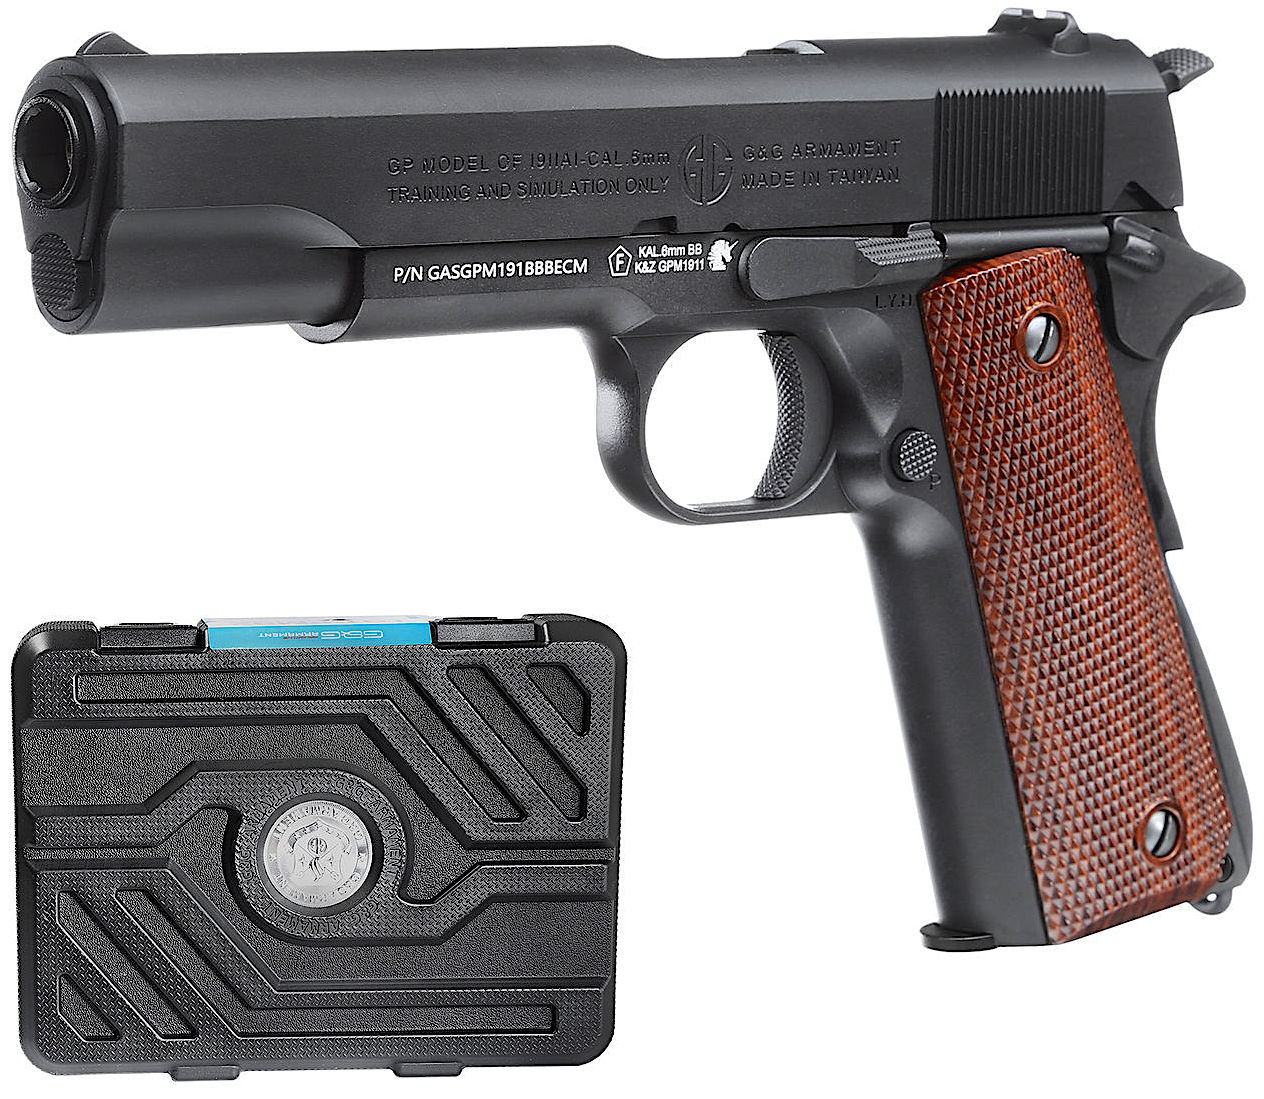 G&G GPM1911 GBB Airsoft Pistol with Box.jpg